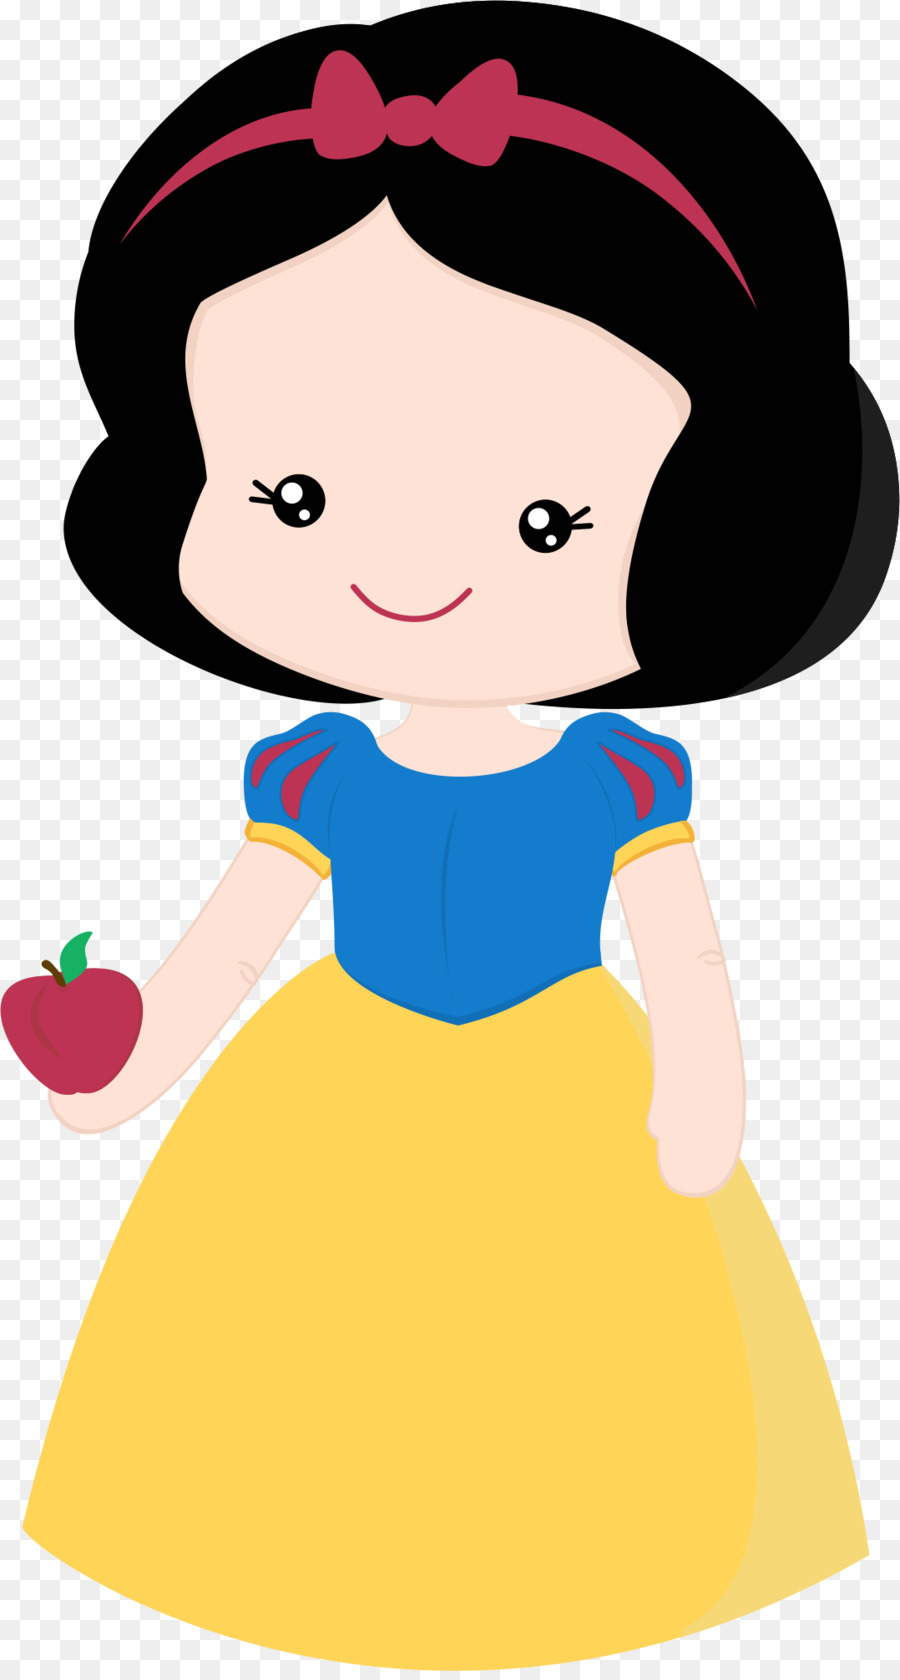 900x1680 Snow White Seven Dwarfs Youtube Dopey Clip Art